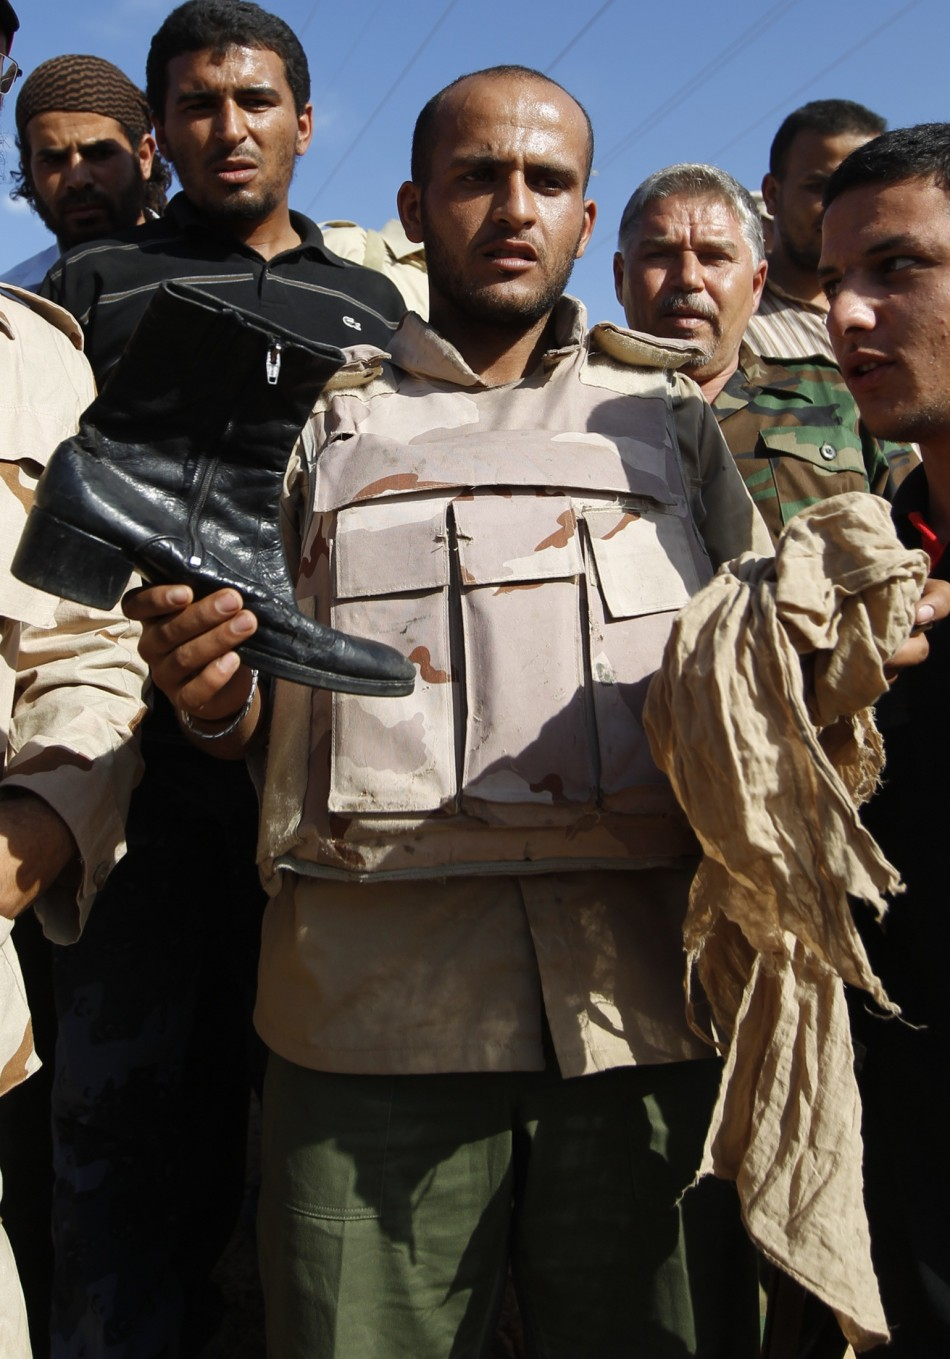 Anti-Gaddafi fighter shows the media clothes of Muammar Gaddafi near Sirte